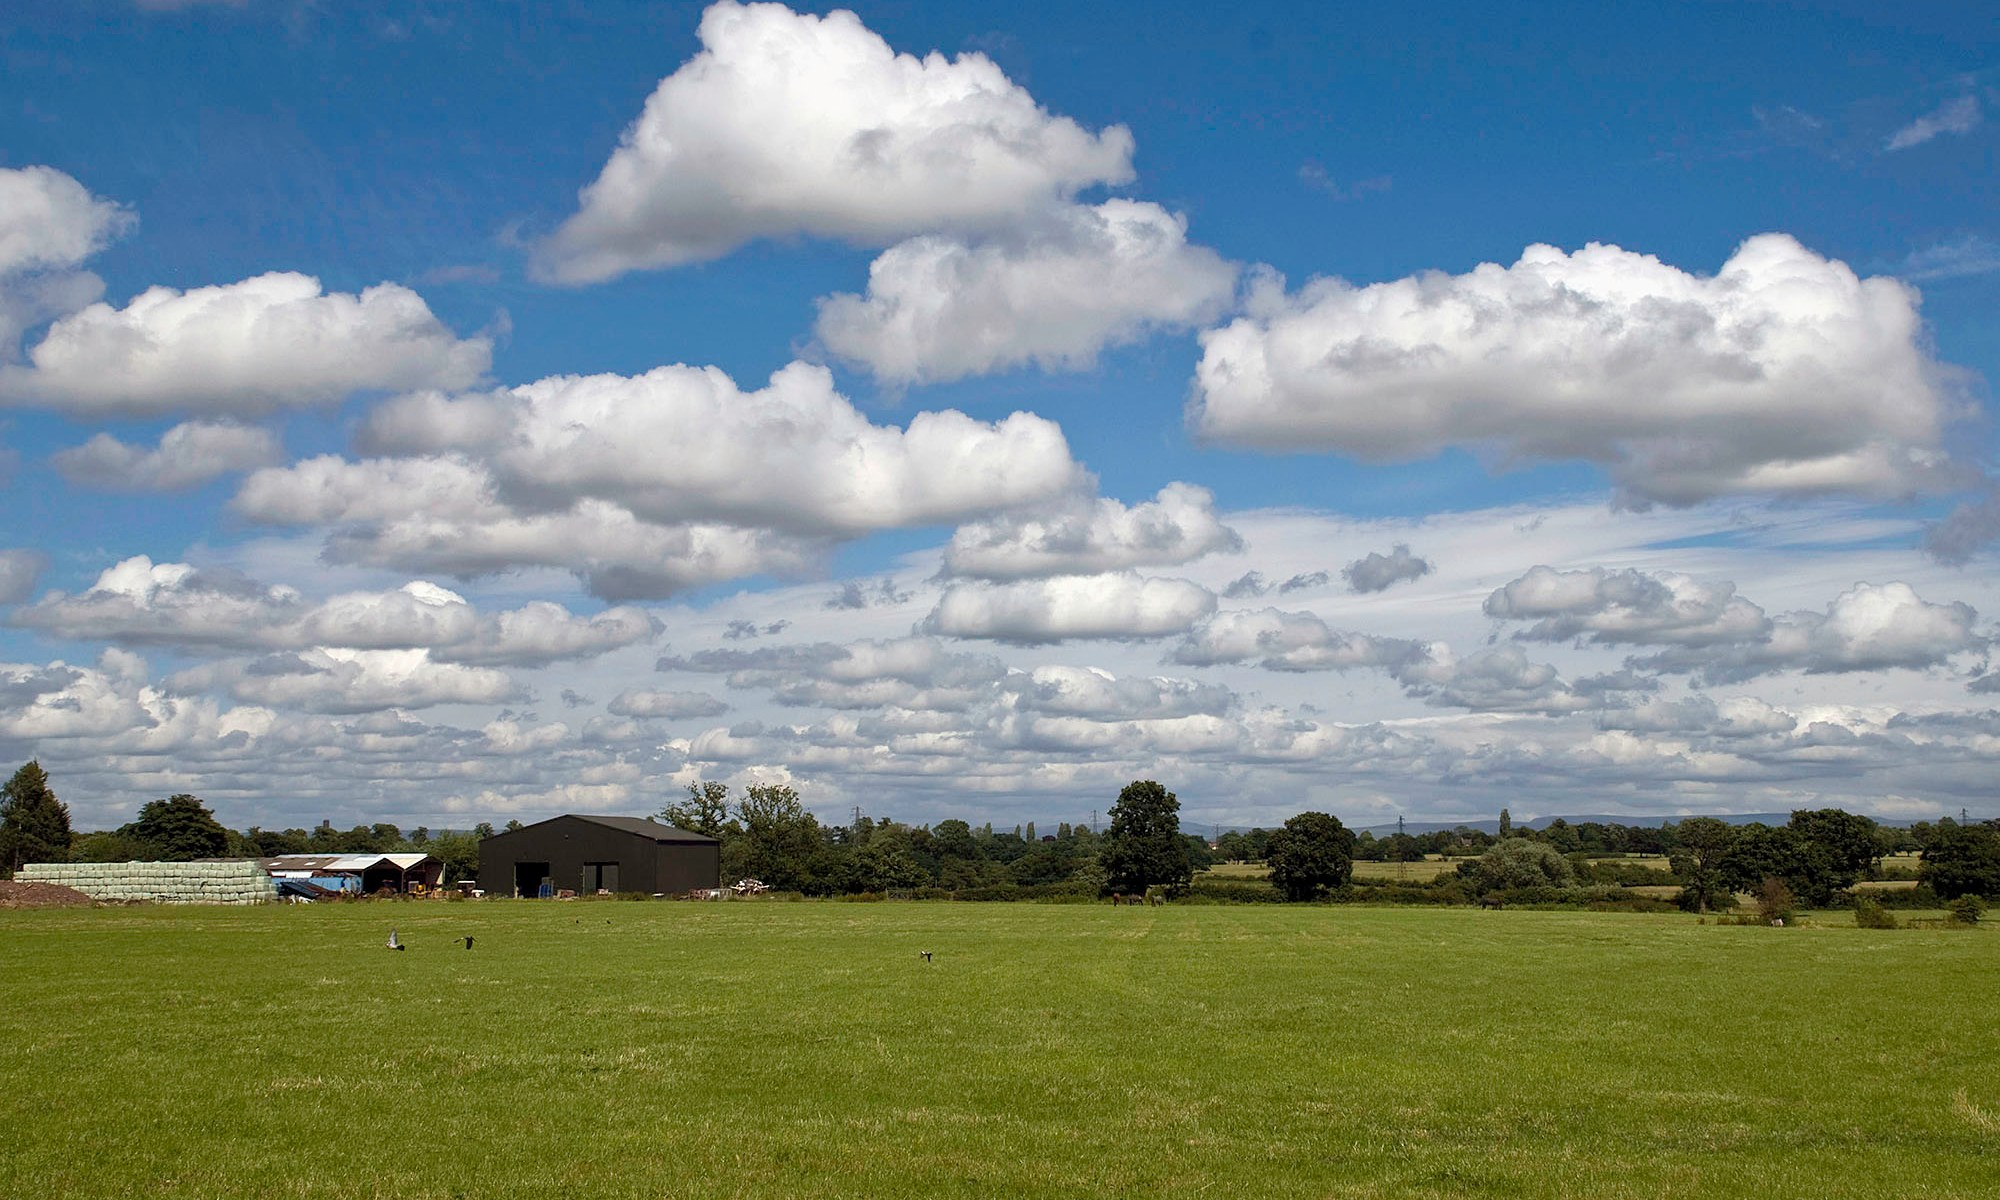 Countryside South of Hale, Cheshire